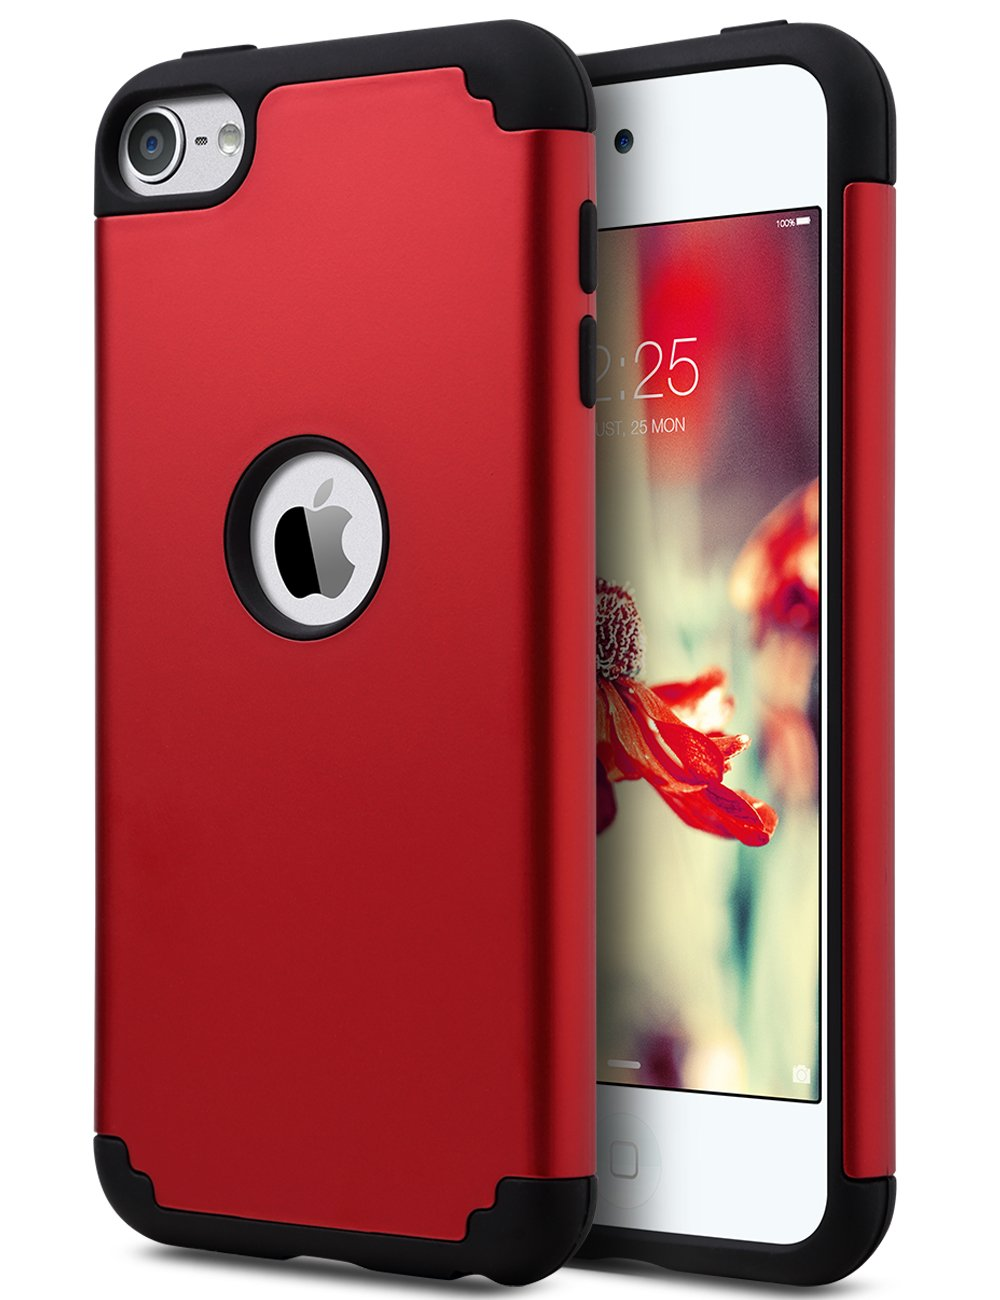 ULAK iPod Touch 7 Case, iPod Touch 6 Case, Slim Fit Hybrid Hard Back Cover with Shockproof Soft Silicone Interior Anti-Scratch Premium Case for iPod Touch 5th/6th/7th Generation, Red